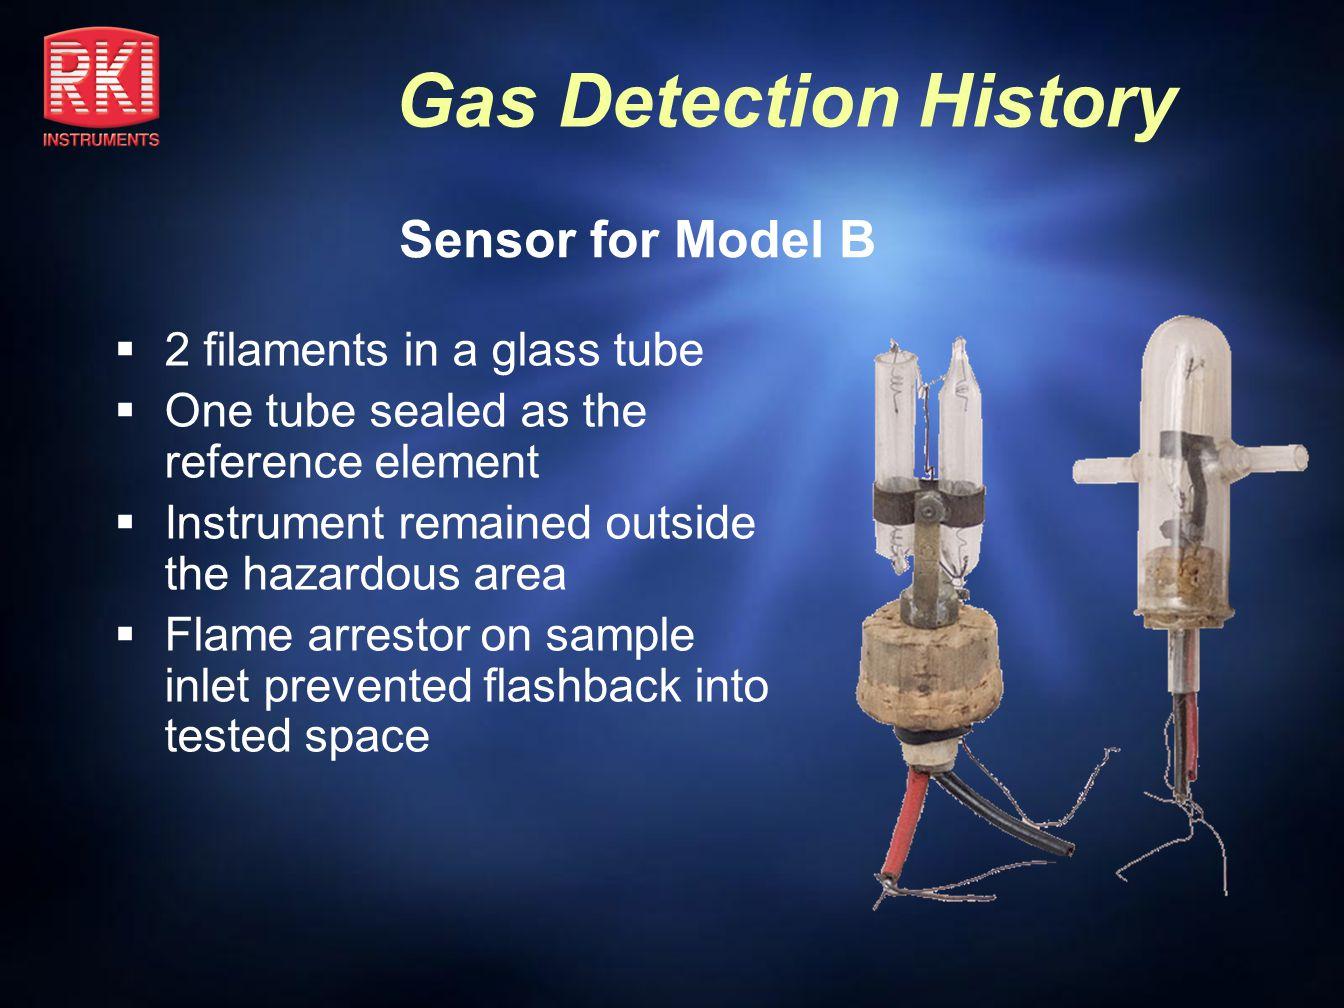 Sensor for Model B 2 filaments in a glass tube